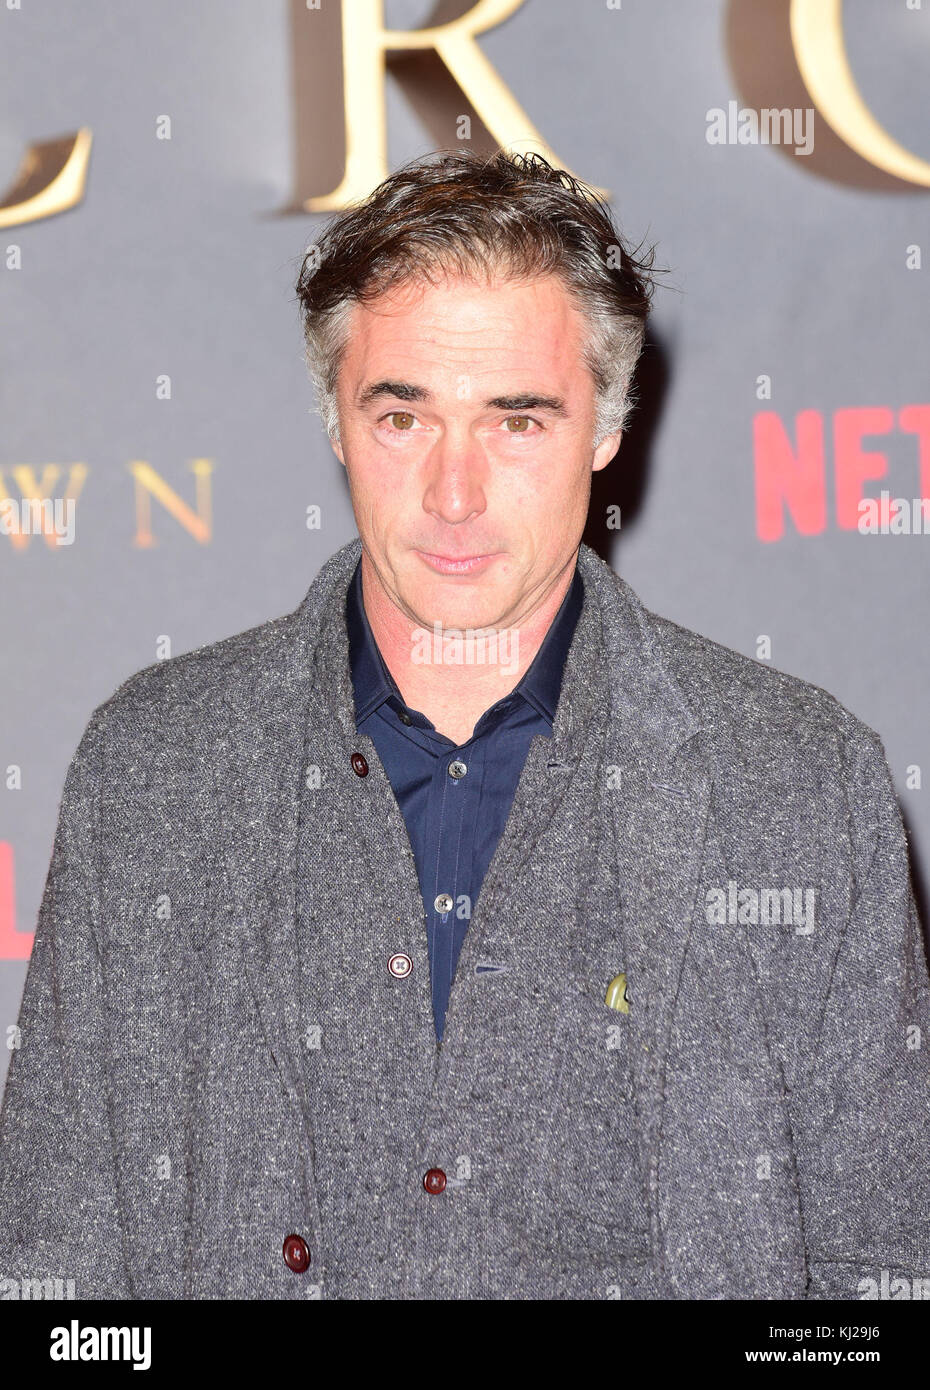 London, UK. 21st Nov, 2017. Greg Wise (Lord Mountbatten ) attending The World Premiere of The CROWN at the Odeon Leicester Square London Tuesday 21st November 2017 Credit: Peter Phillips/Alamy Live News Stock Photo